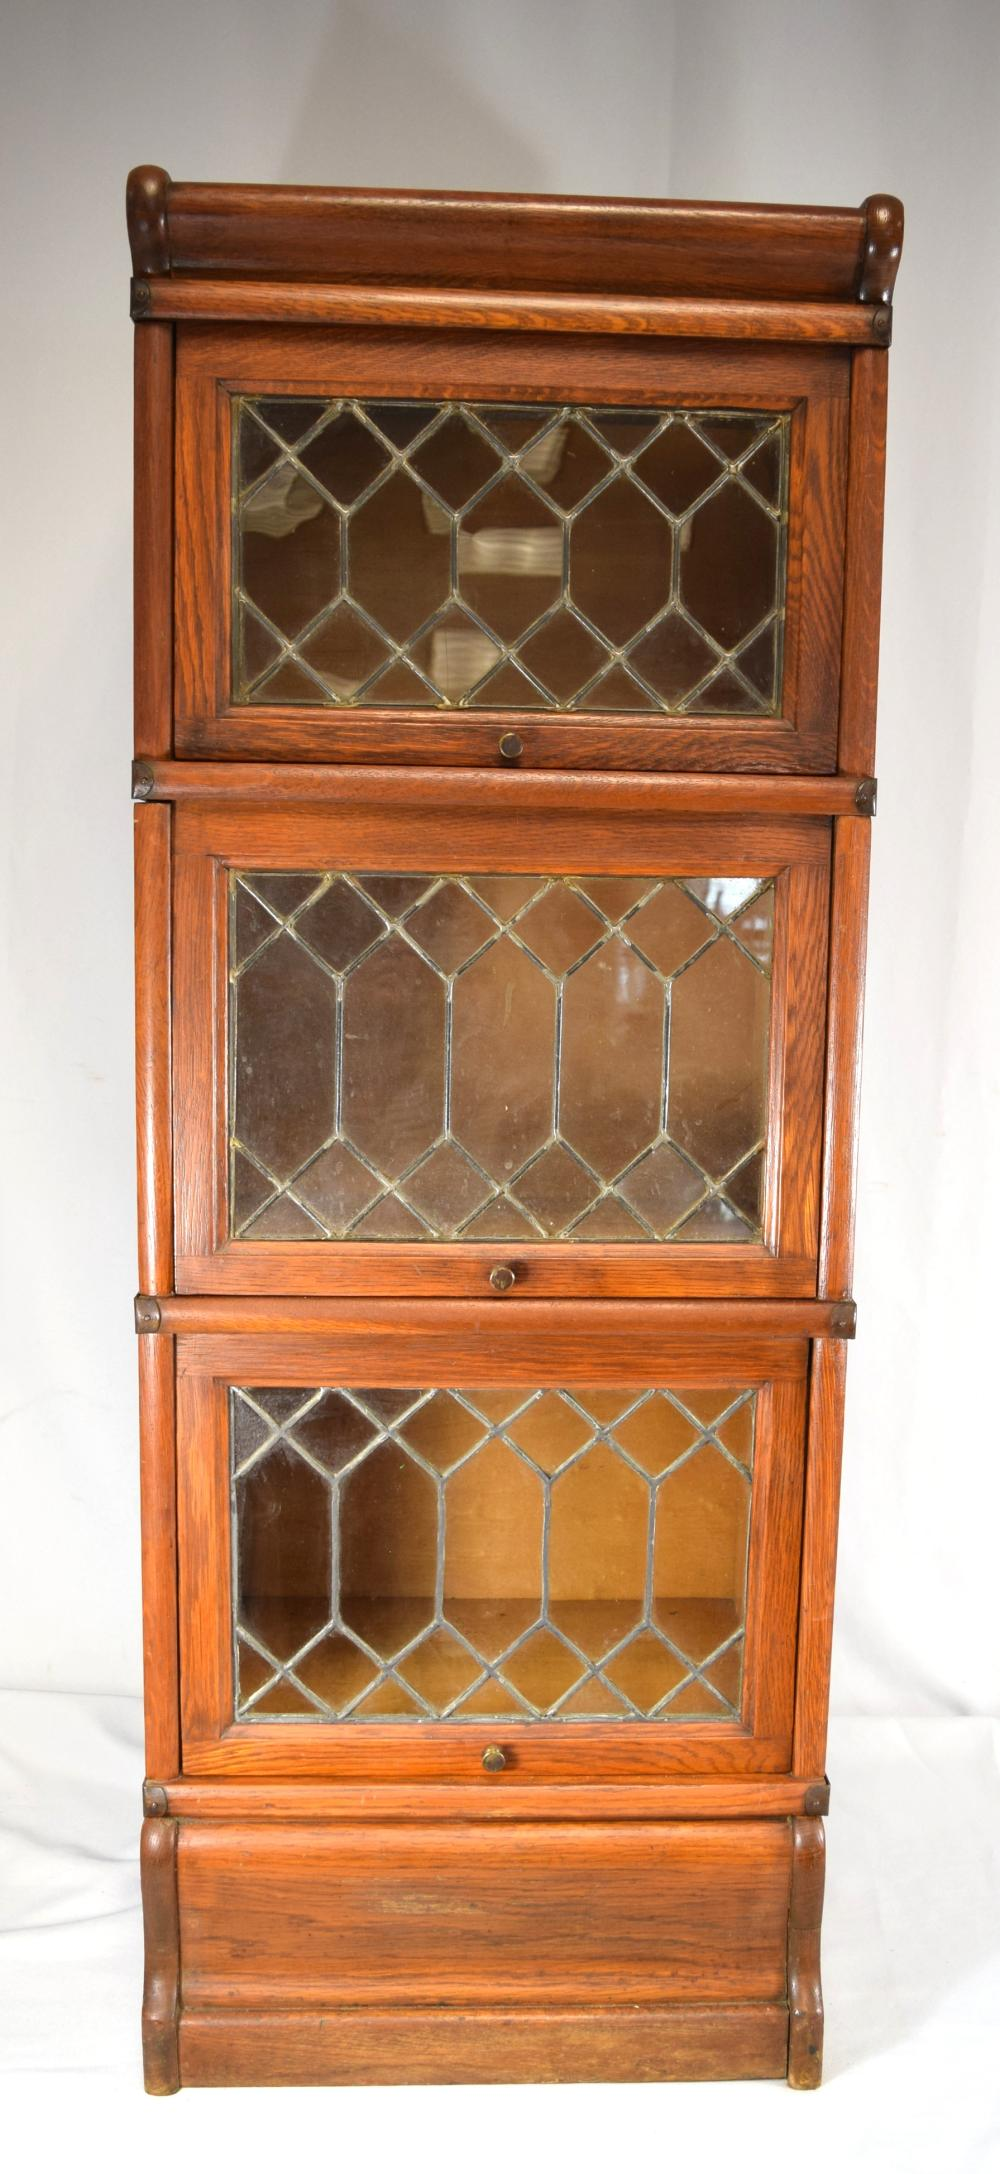 HALF SIZE MACEY'S LEADED GLASS  BANNISTER STACKABLE BOOKCASE: